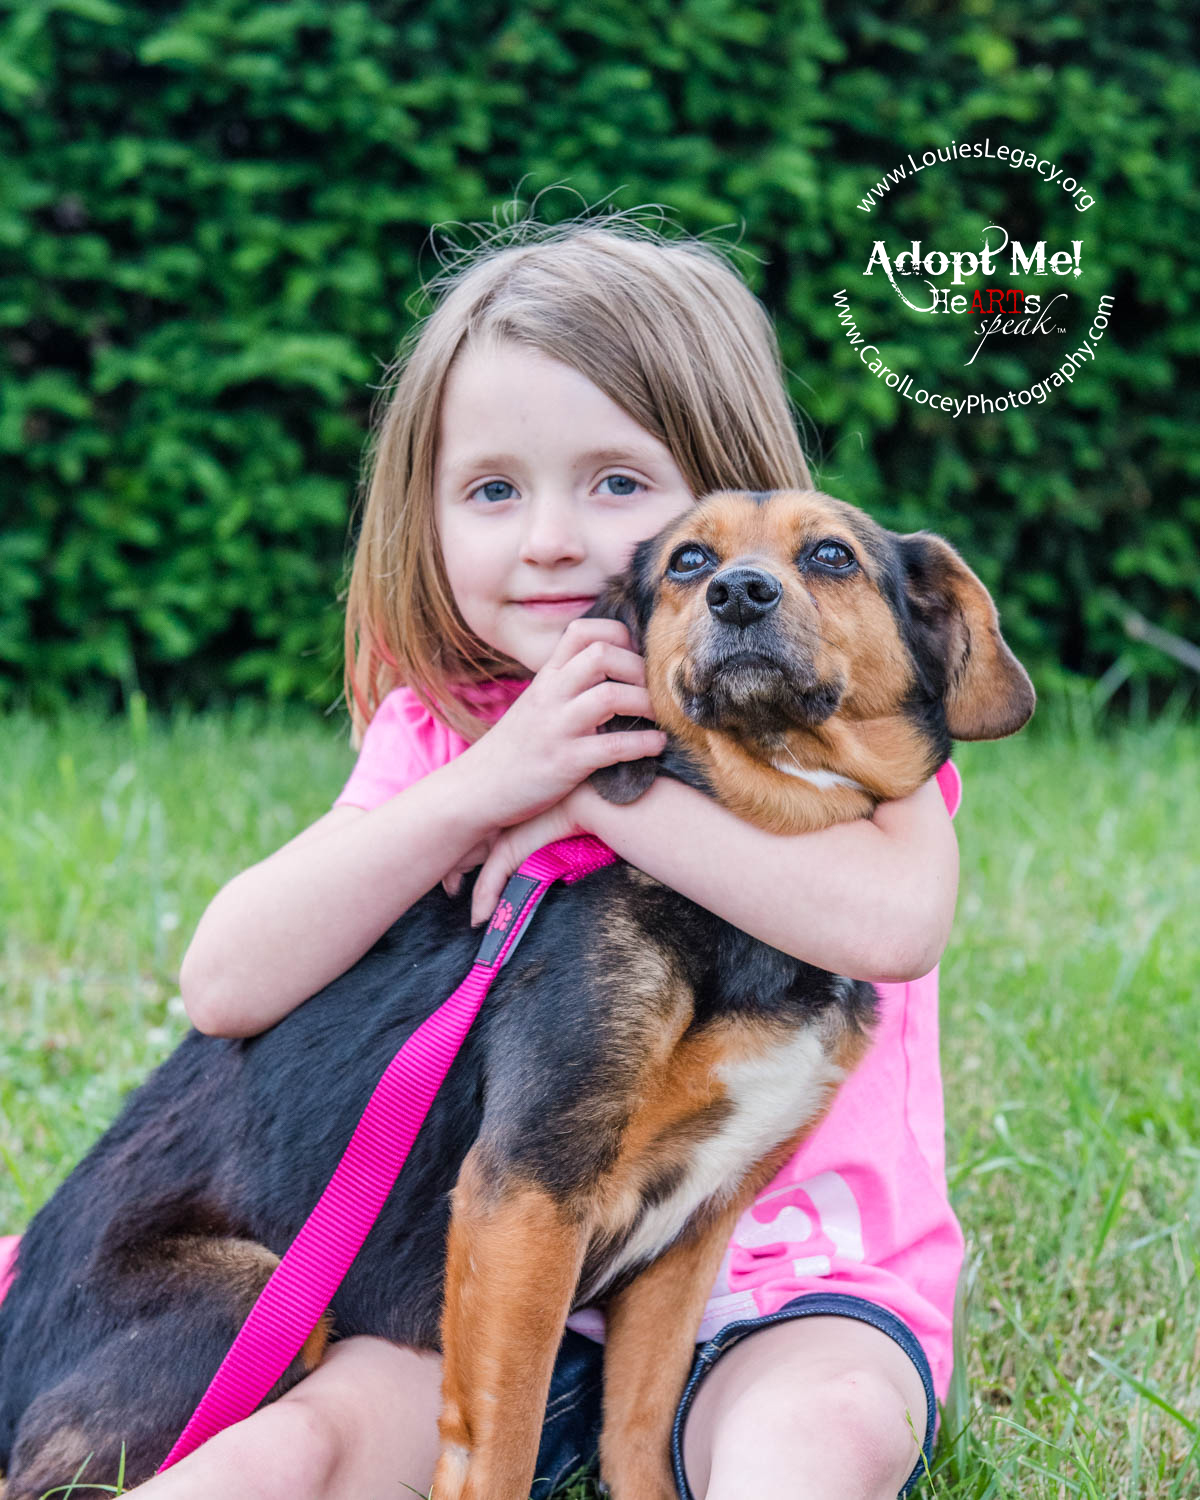 Young Volunteer, Abby, and her foster dog Missy.  Missy has been adopted.